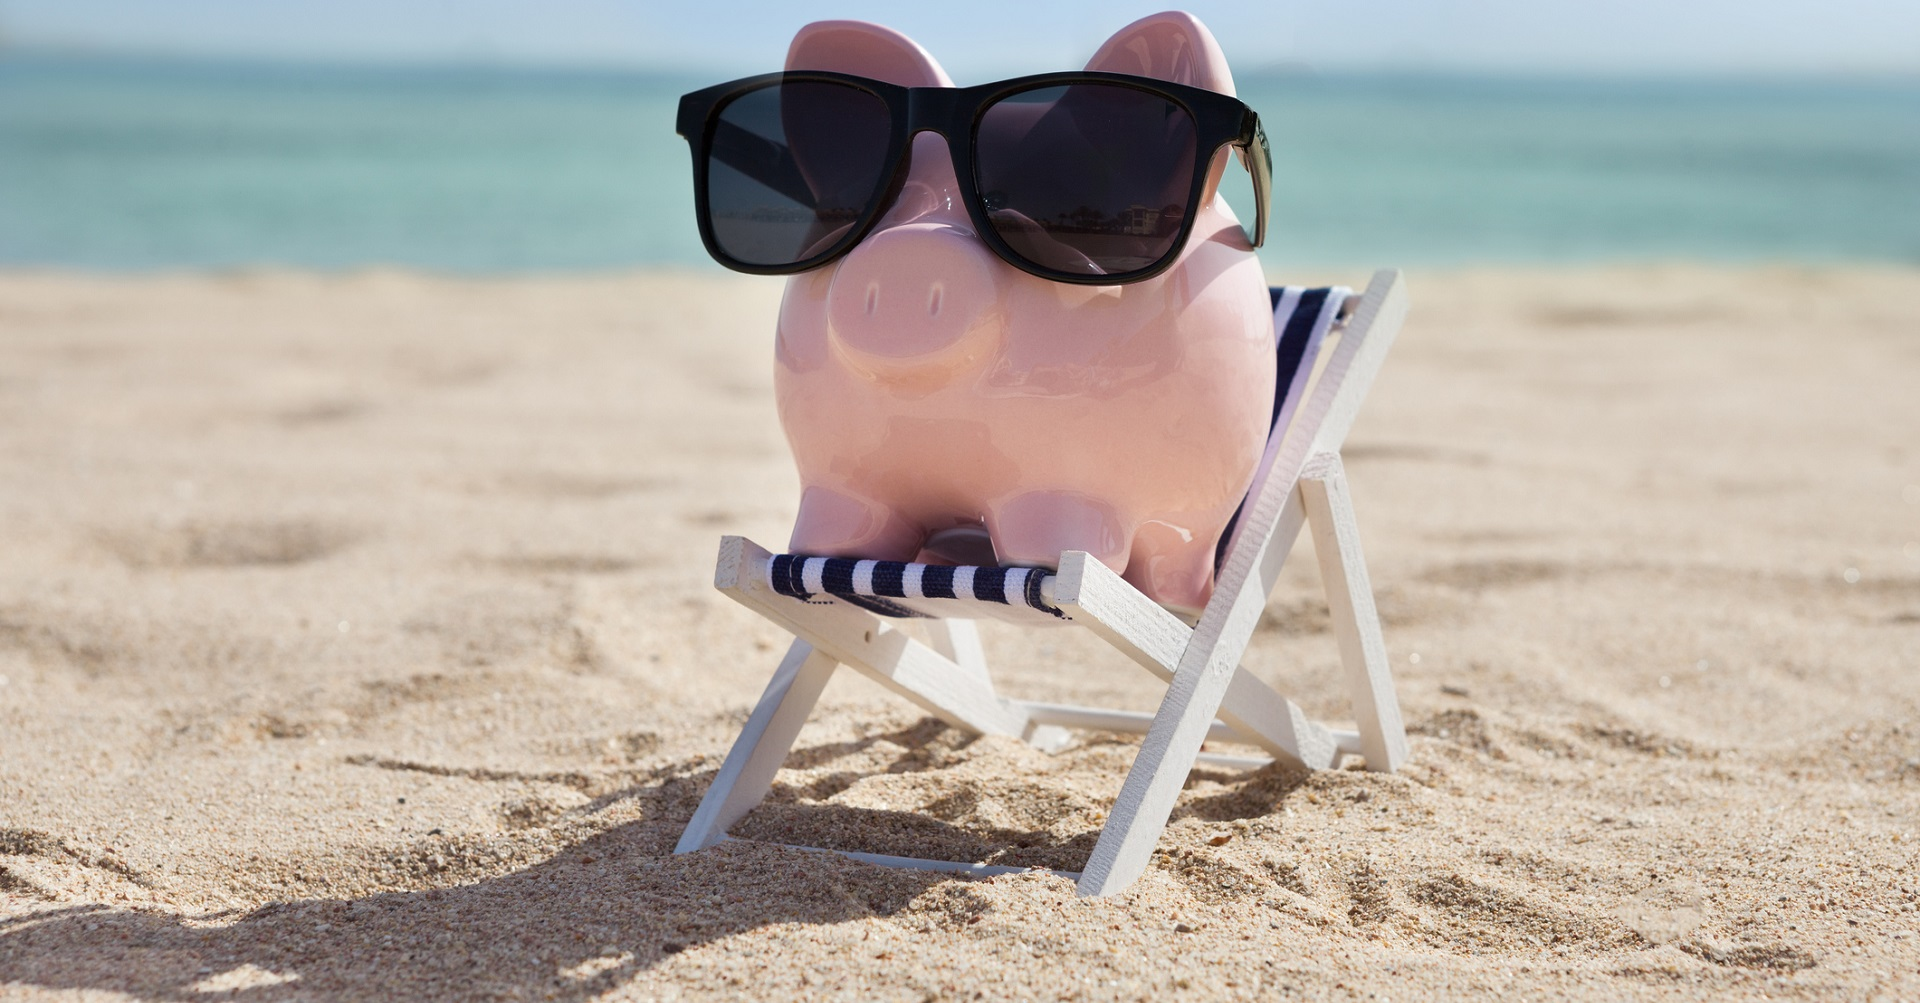 Piggy on the beach with sunglasses